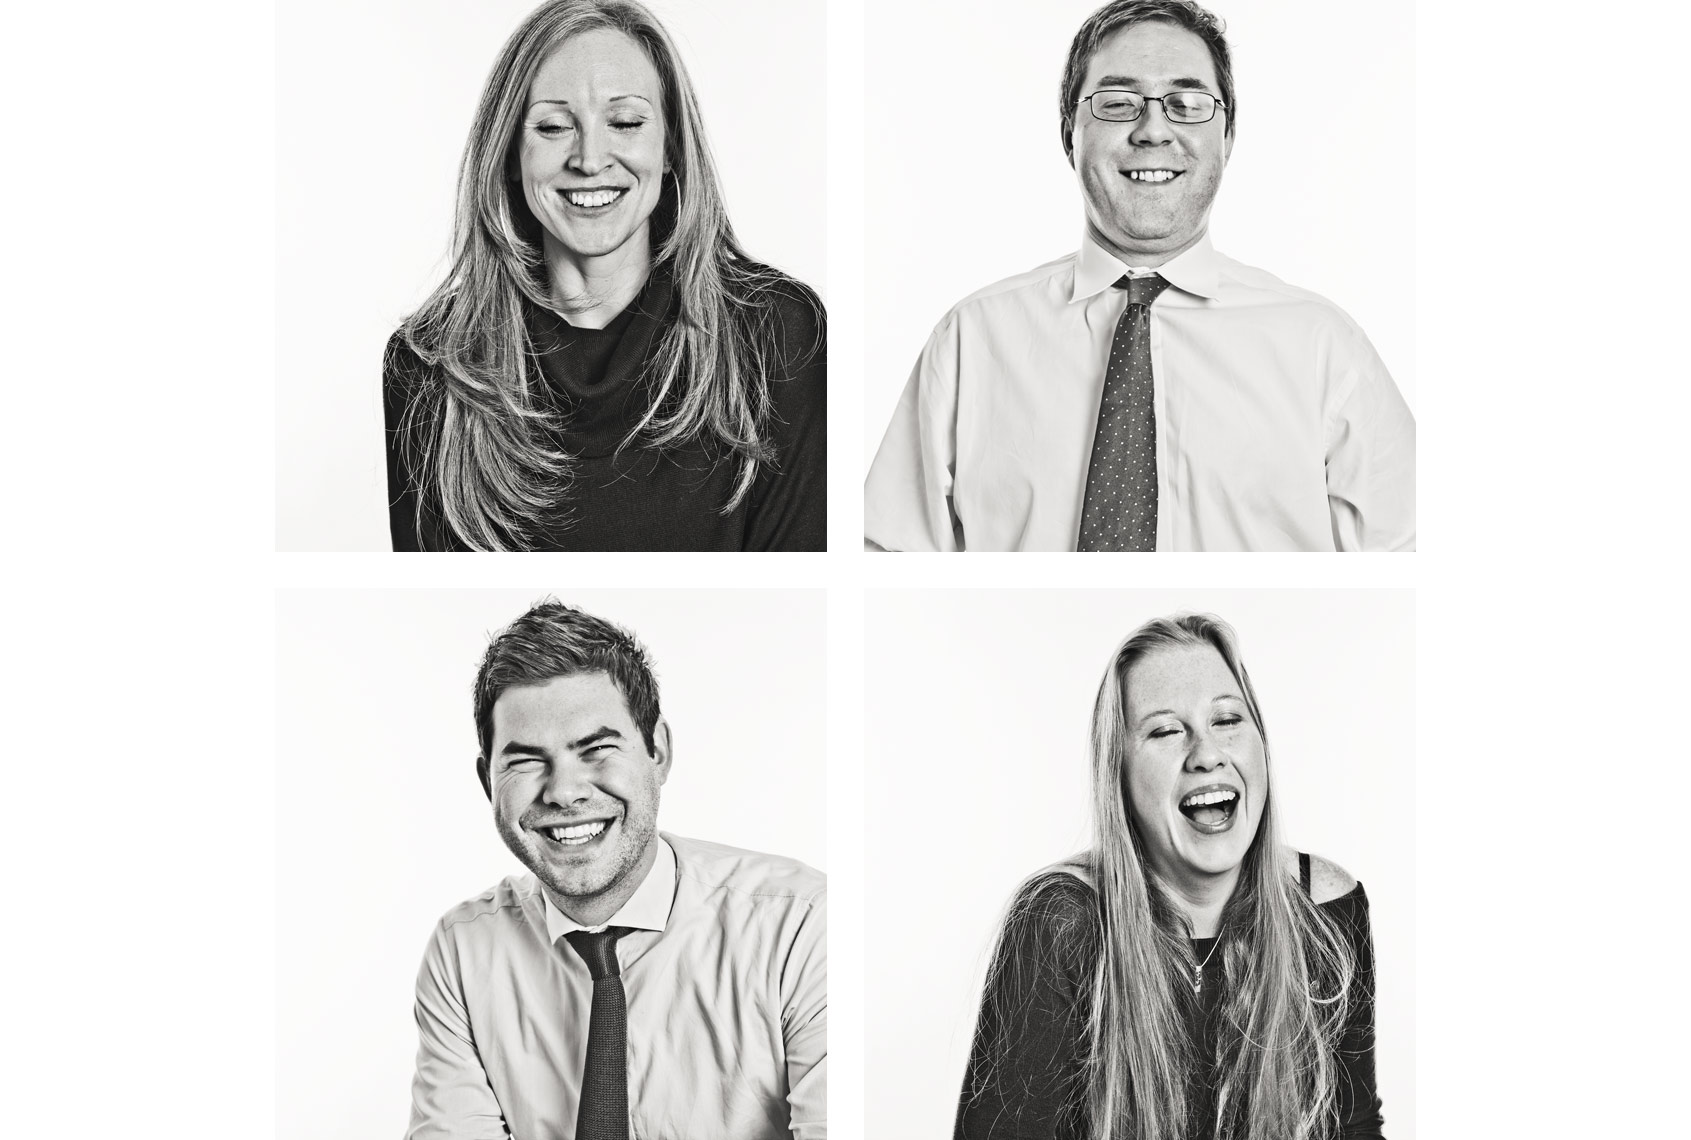 Four laughing people